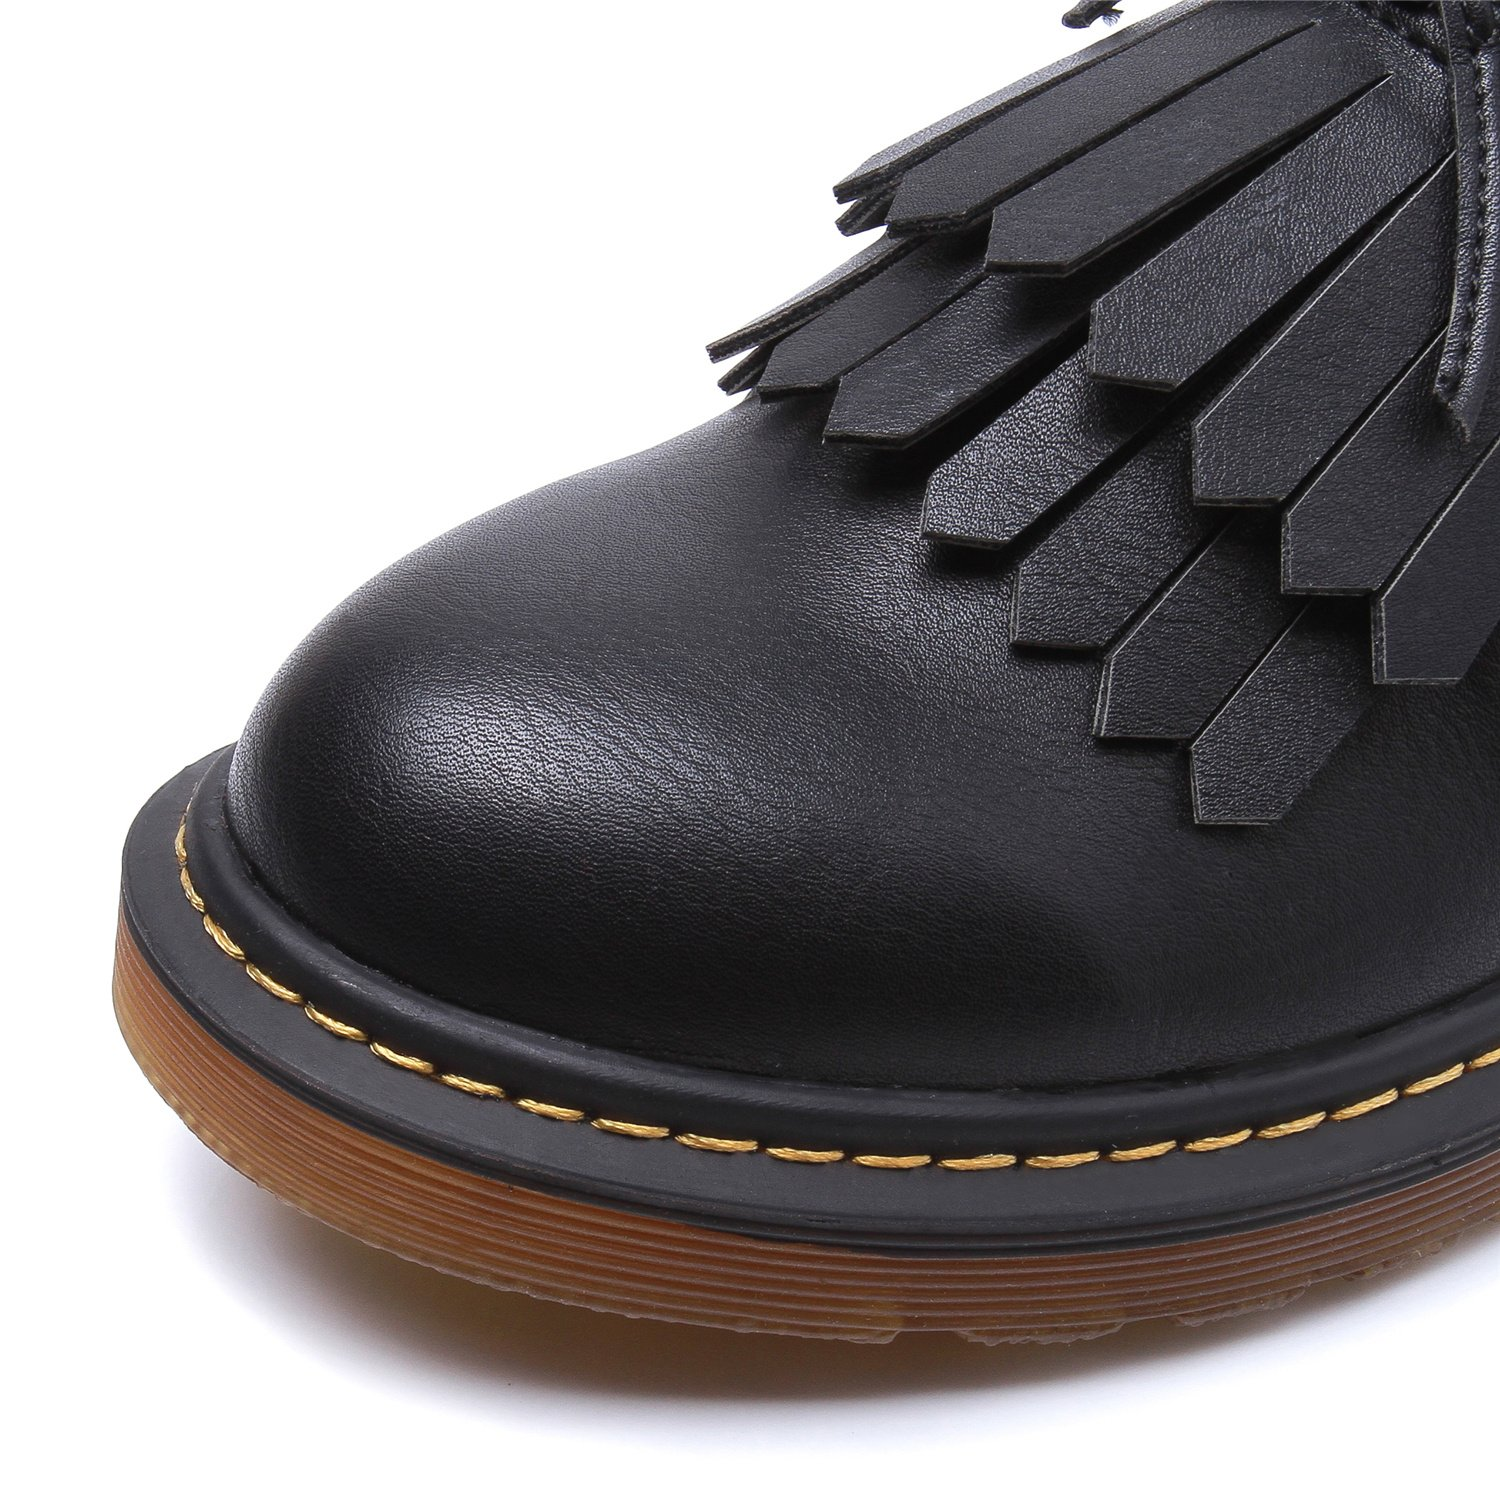 Smilun Lady¡¯s Brogues Classic Lace-Up Flats Shoes For Autumn Winter Spring Slip On Black Size 10 B(M) US by Smilun (Image #3)